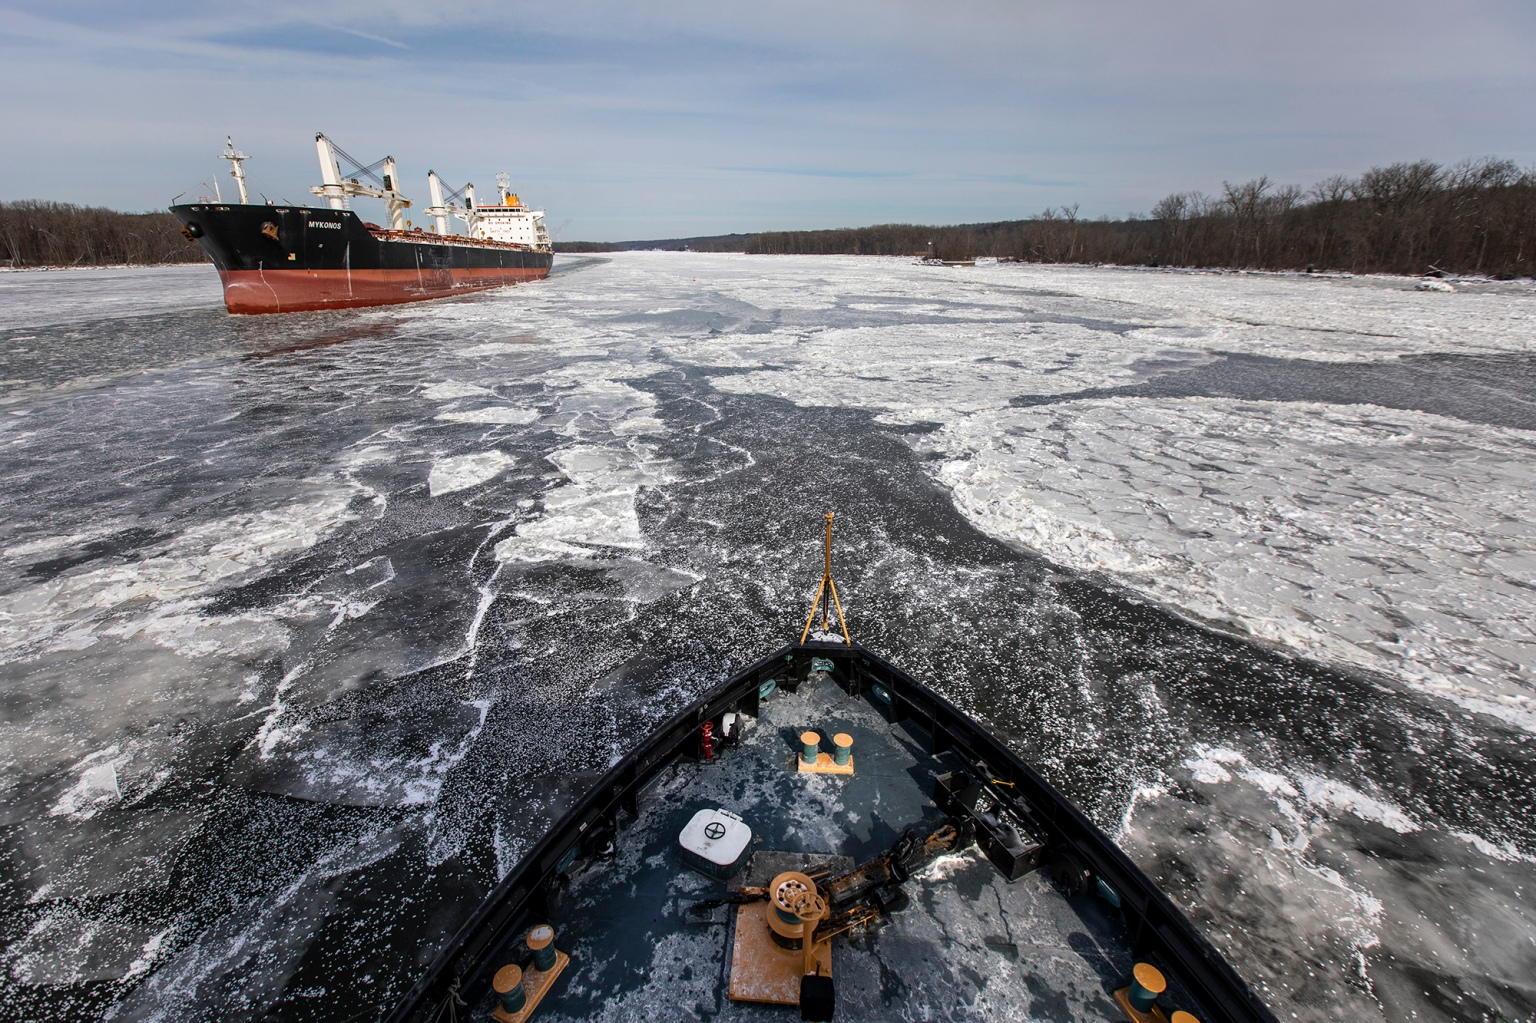 The USCGC Penobscot Bay, an icebreaking tugboat of the U.S. Coast Guard, cuts through ice as it makes its way north on the Hudson River between the cities of Kingston and Albany, N.Y., on Feb. 1. (Drew Angerer/Getty Images)